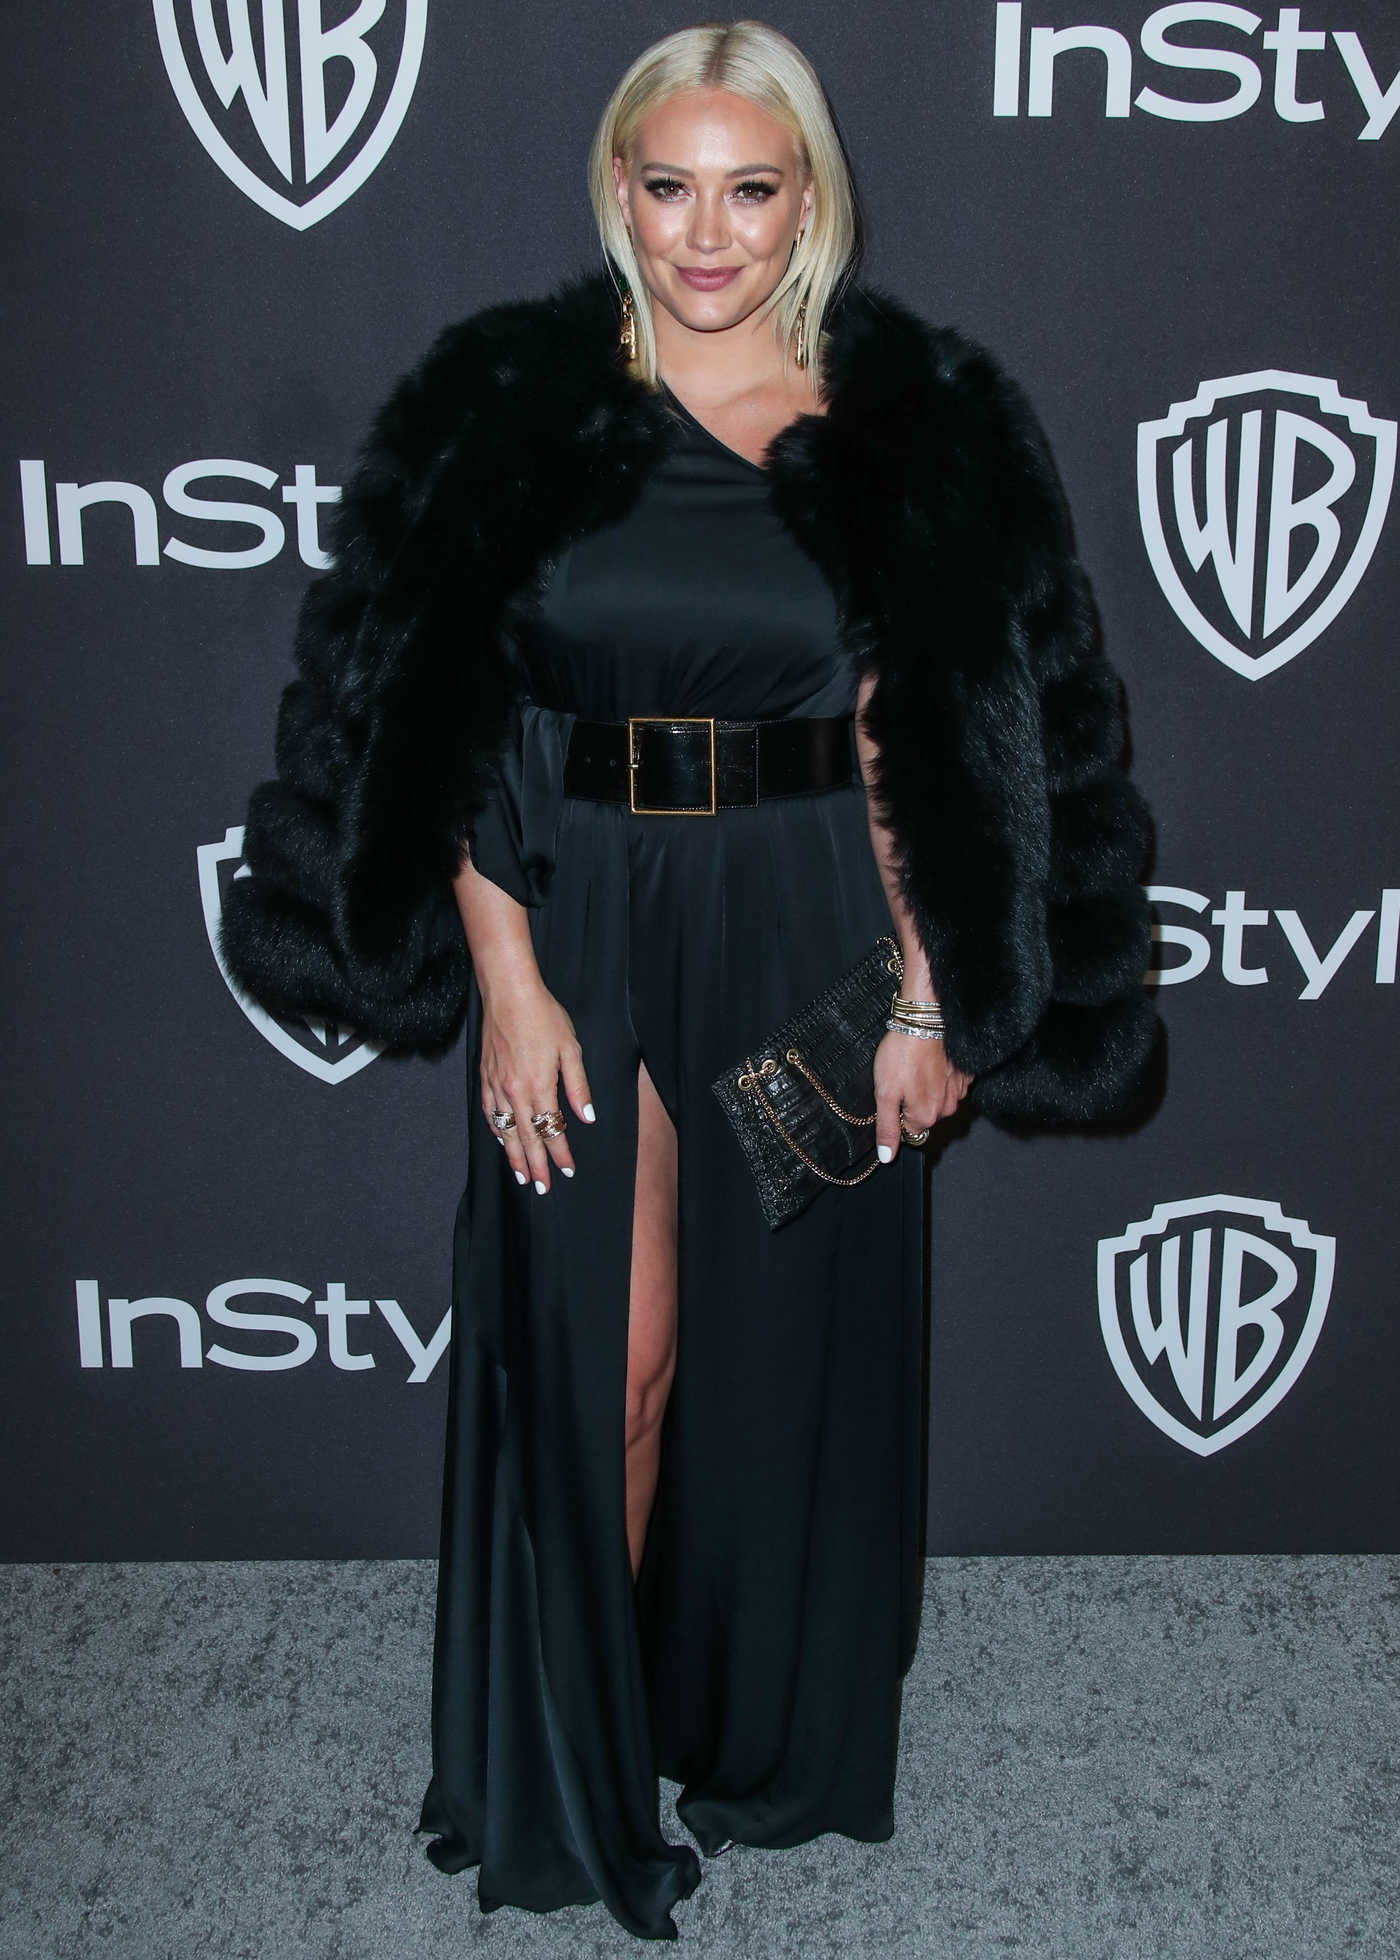 Hilary Duff Attends InStyle and Warner Bros Golden Globes After Party in Beverly Hills 01/06/2019